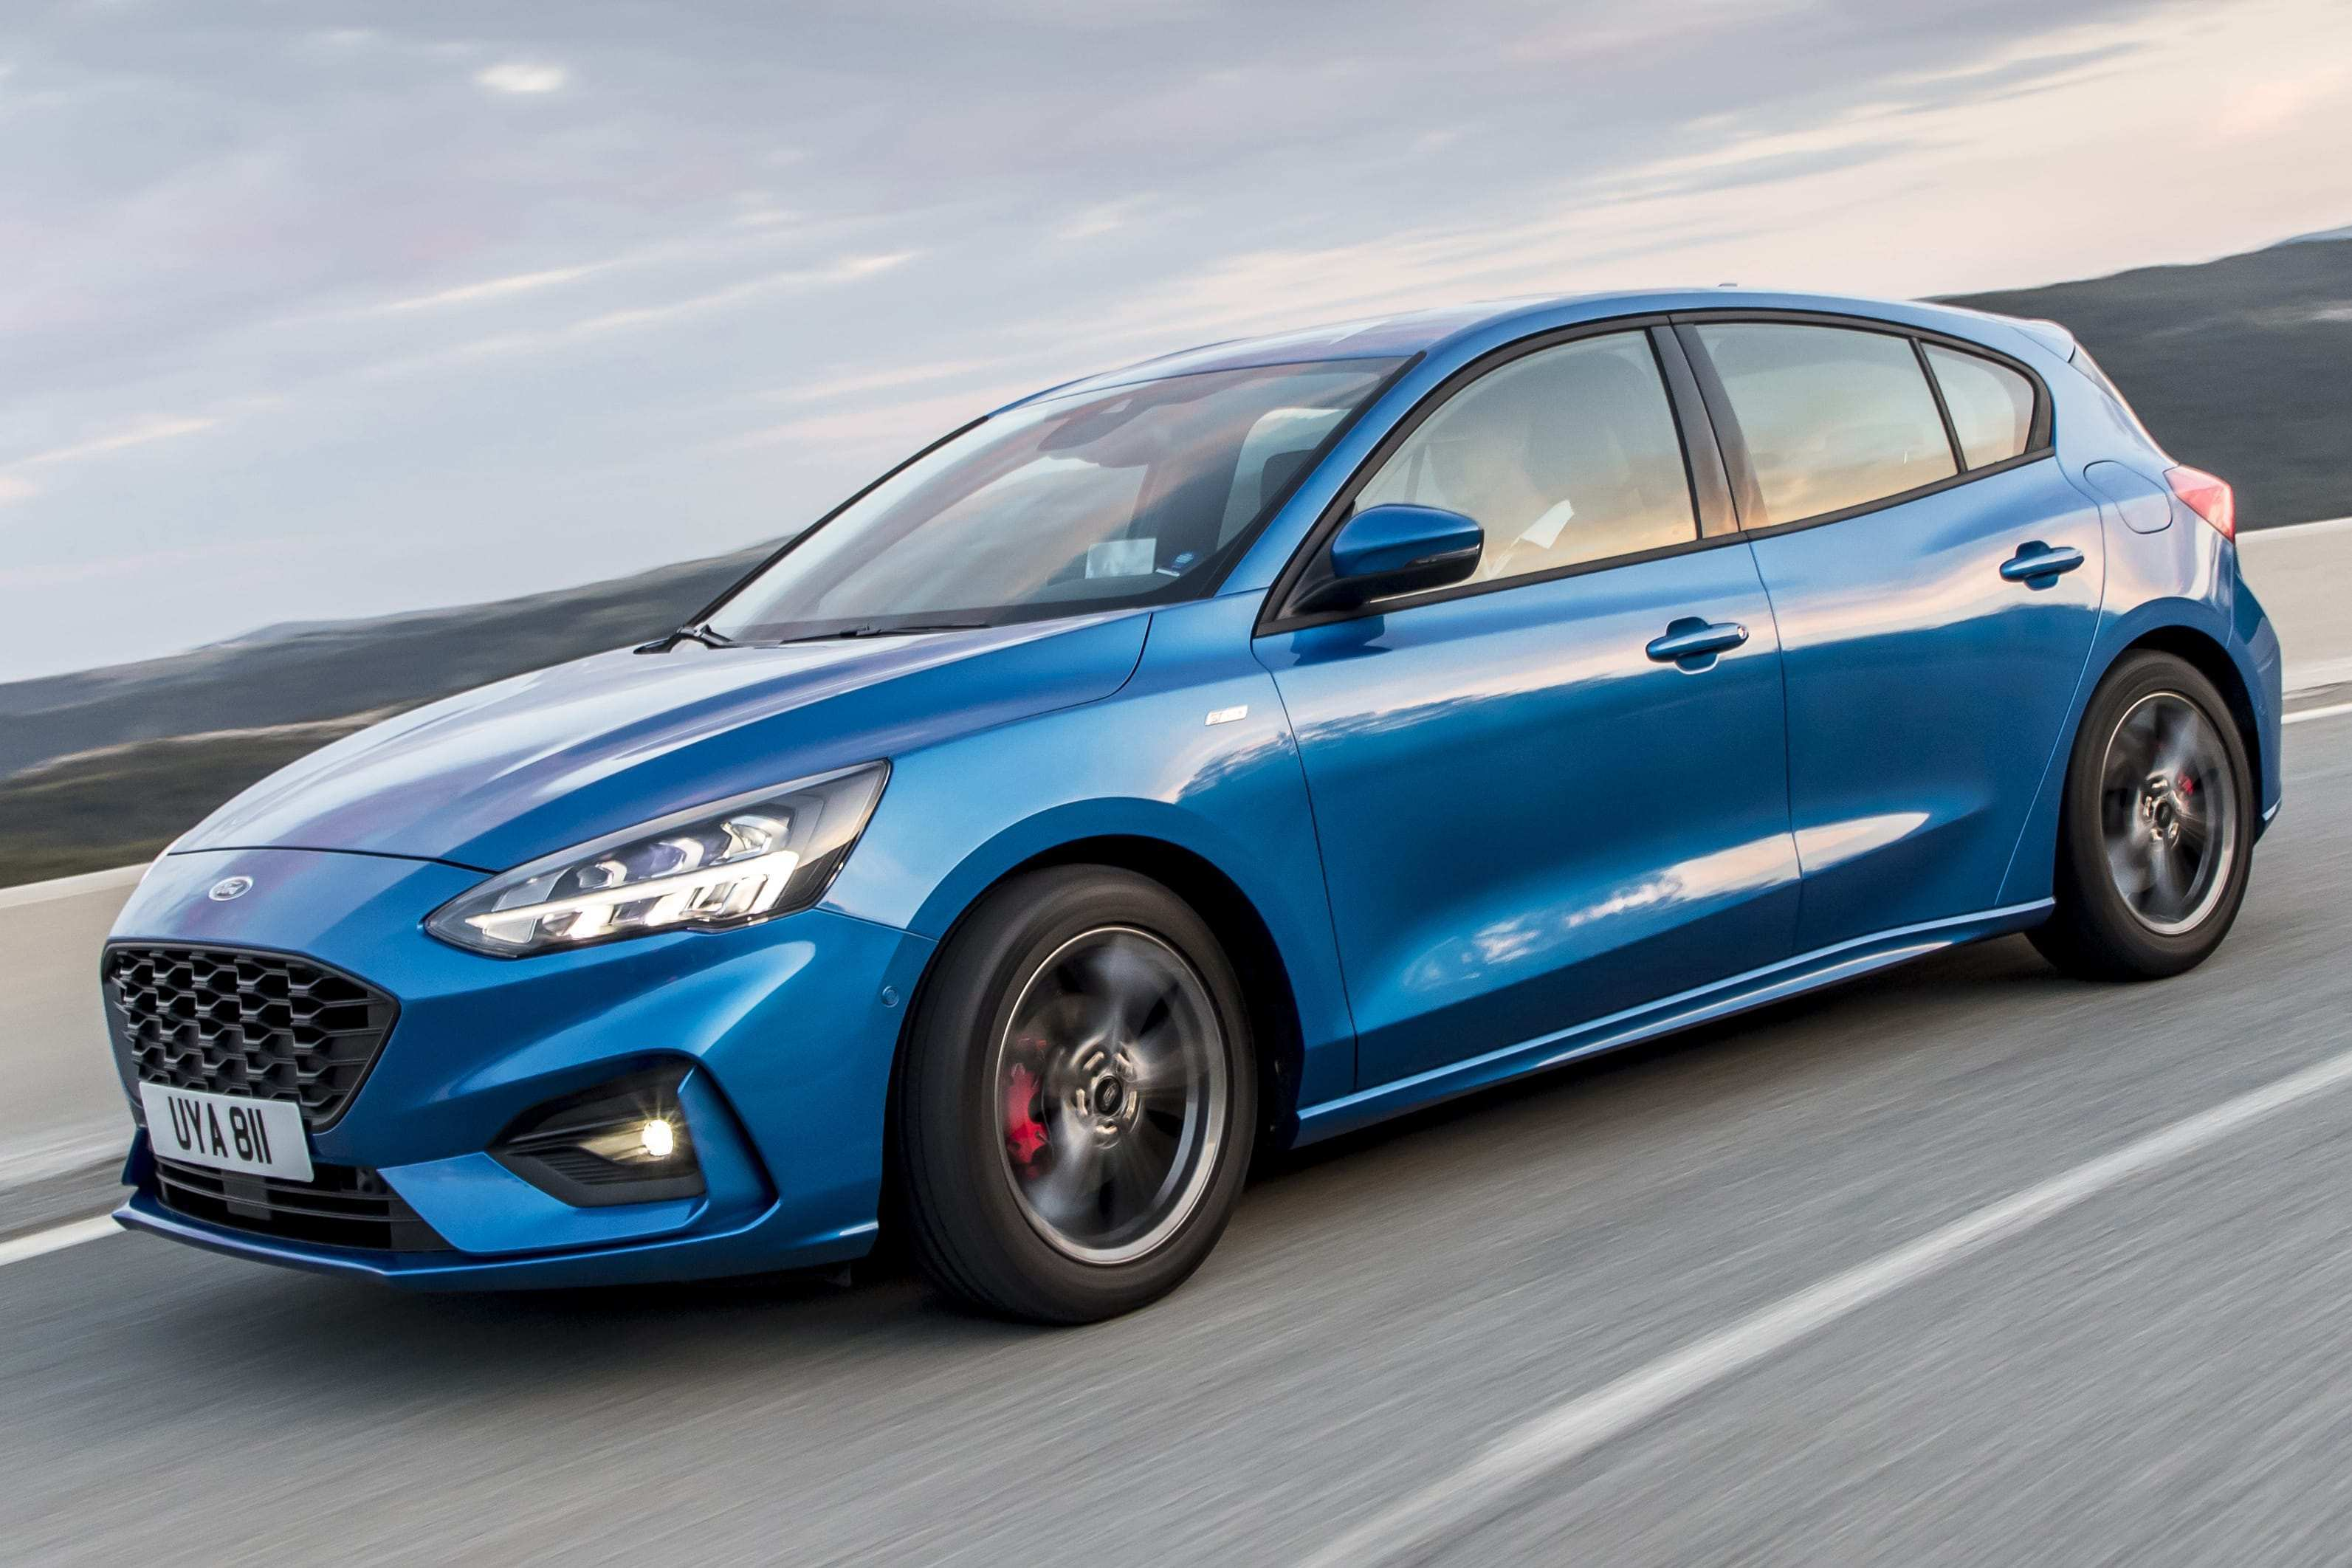 47 Best Review 2019 Ford Focus St Line Price by 2019 Ford Focus St Line